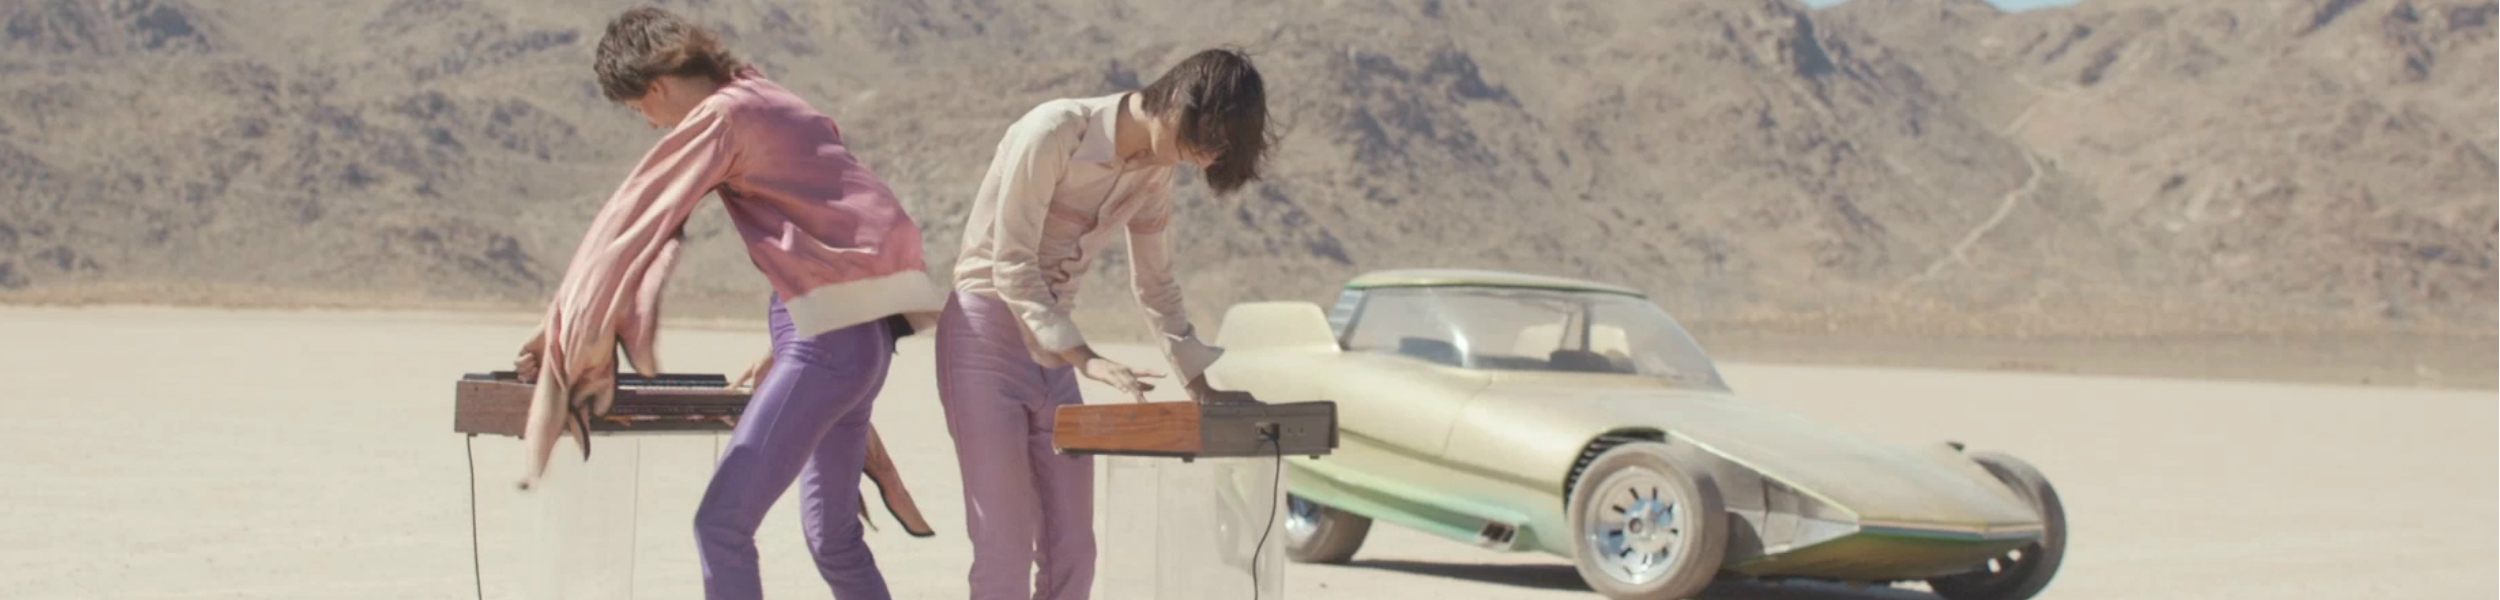 The Lemon Twigs - 'As Long As We're Together' Video